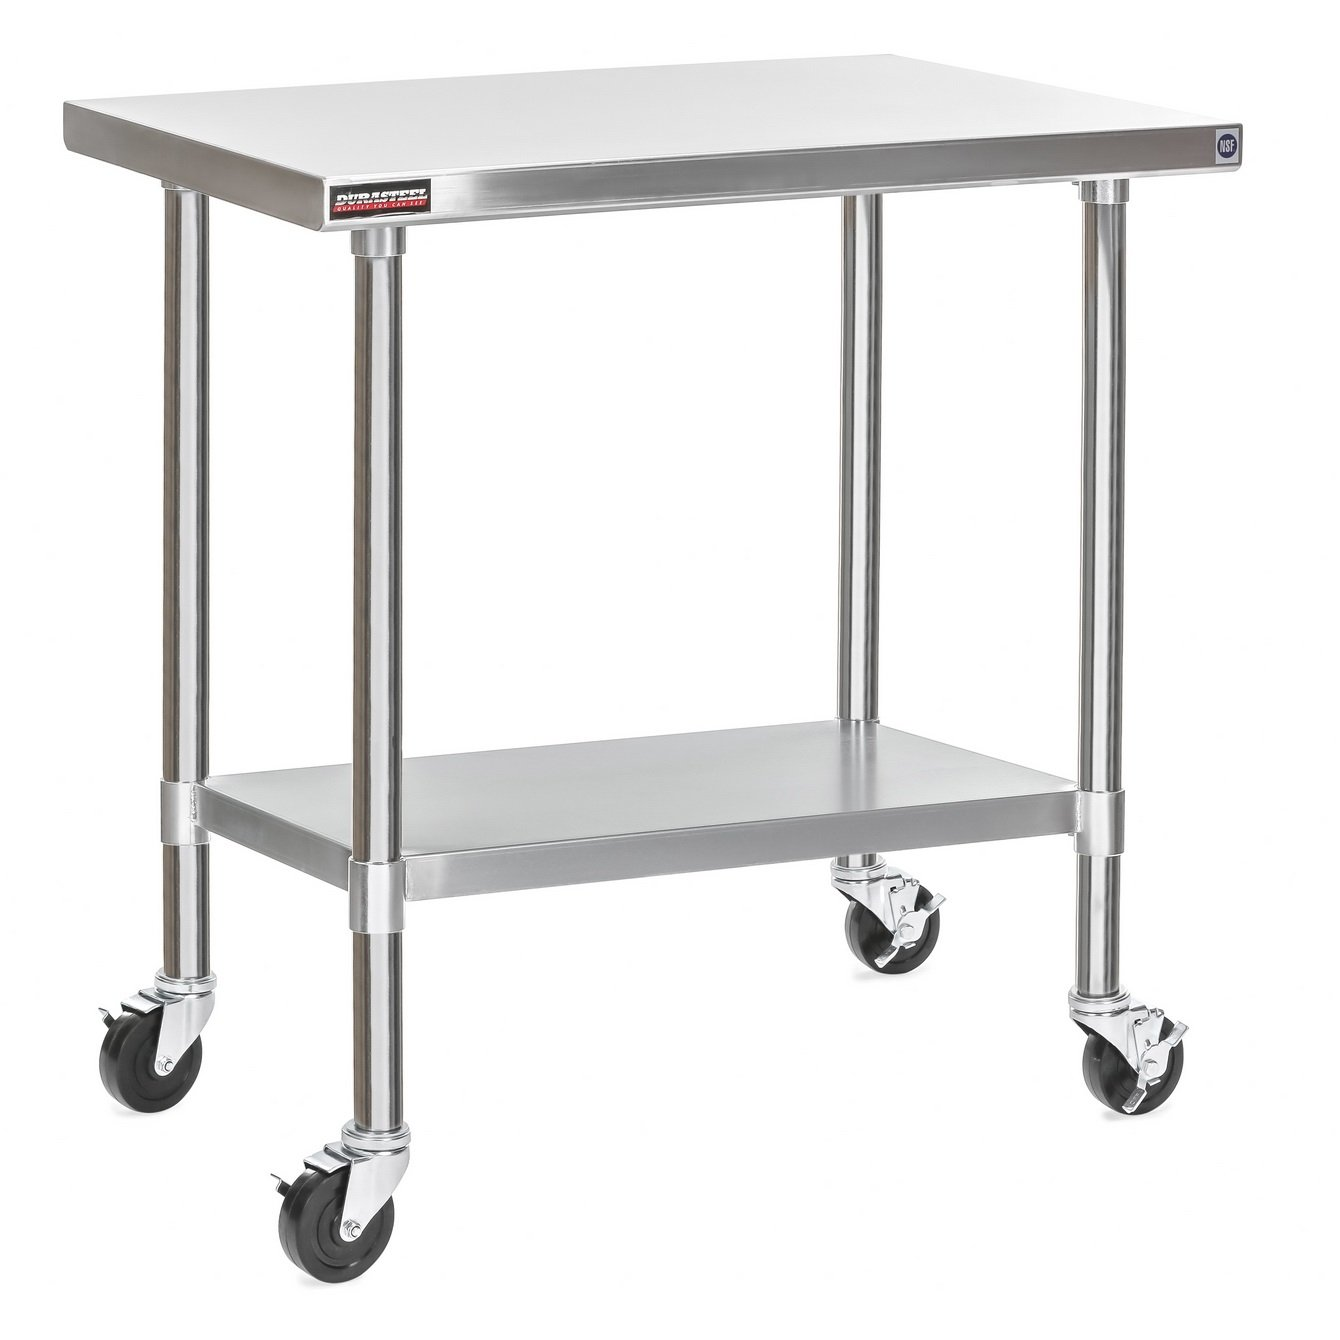 Apex Worktable Stainless Steel Food Prep 24'' X 36'' X 34'' Height With 4 Caster Wheels Work Table- Commercial Grade Work Table - Good For Restaurant, Business, Warehouse, Home, Kitchen, Garage